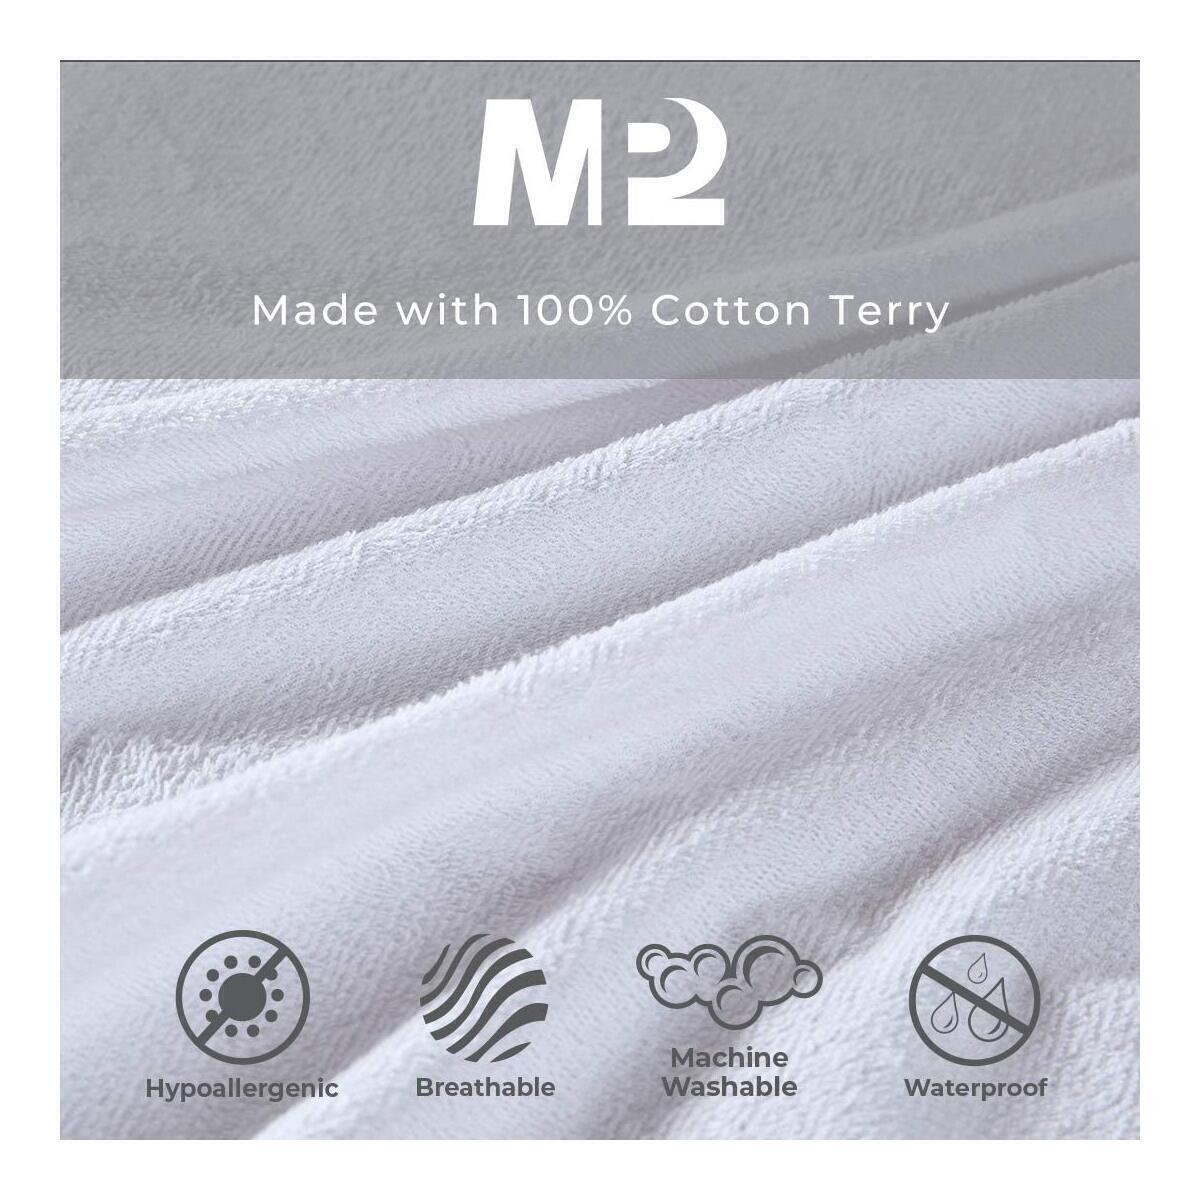 Waterproof Mattress Pad Deep Pocket Mattress Protector , Breathable Cooling Cotton Terry Bed Cover Stain Release 3M Scotchgard -  Cal King  Size, Fits 4